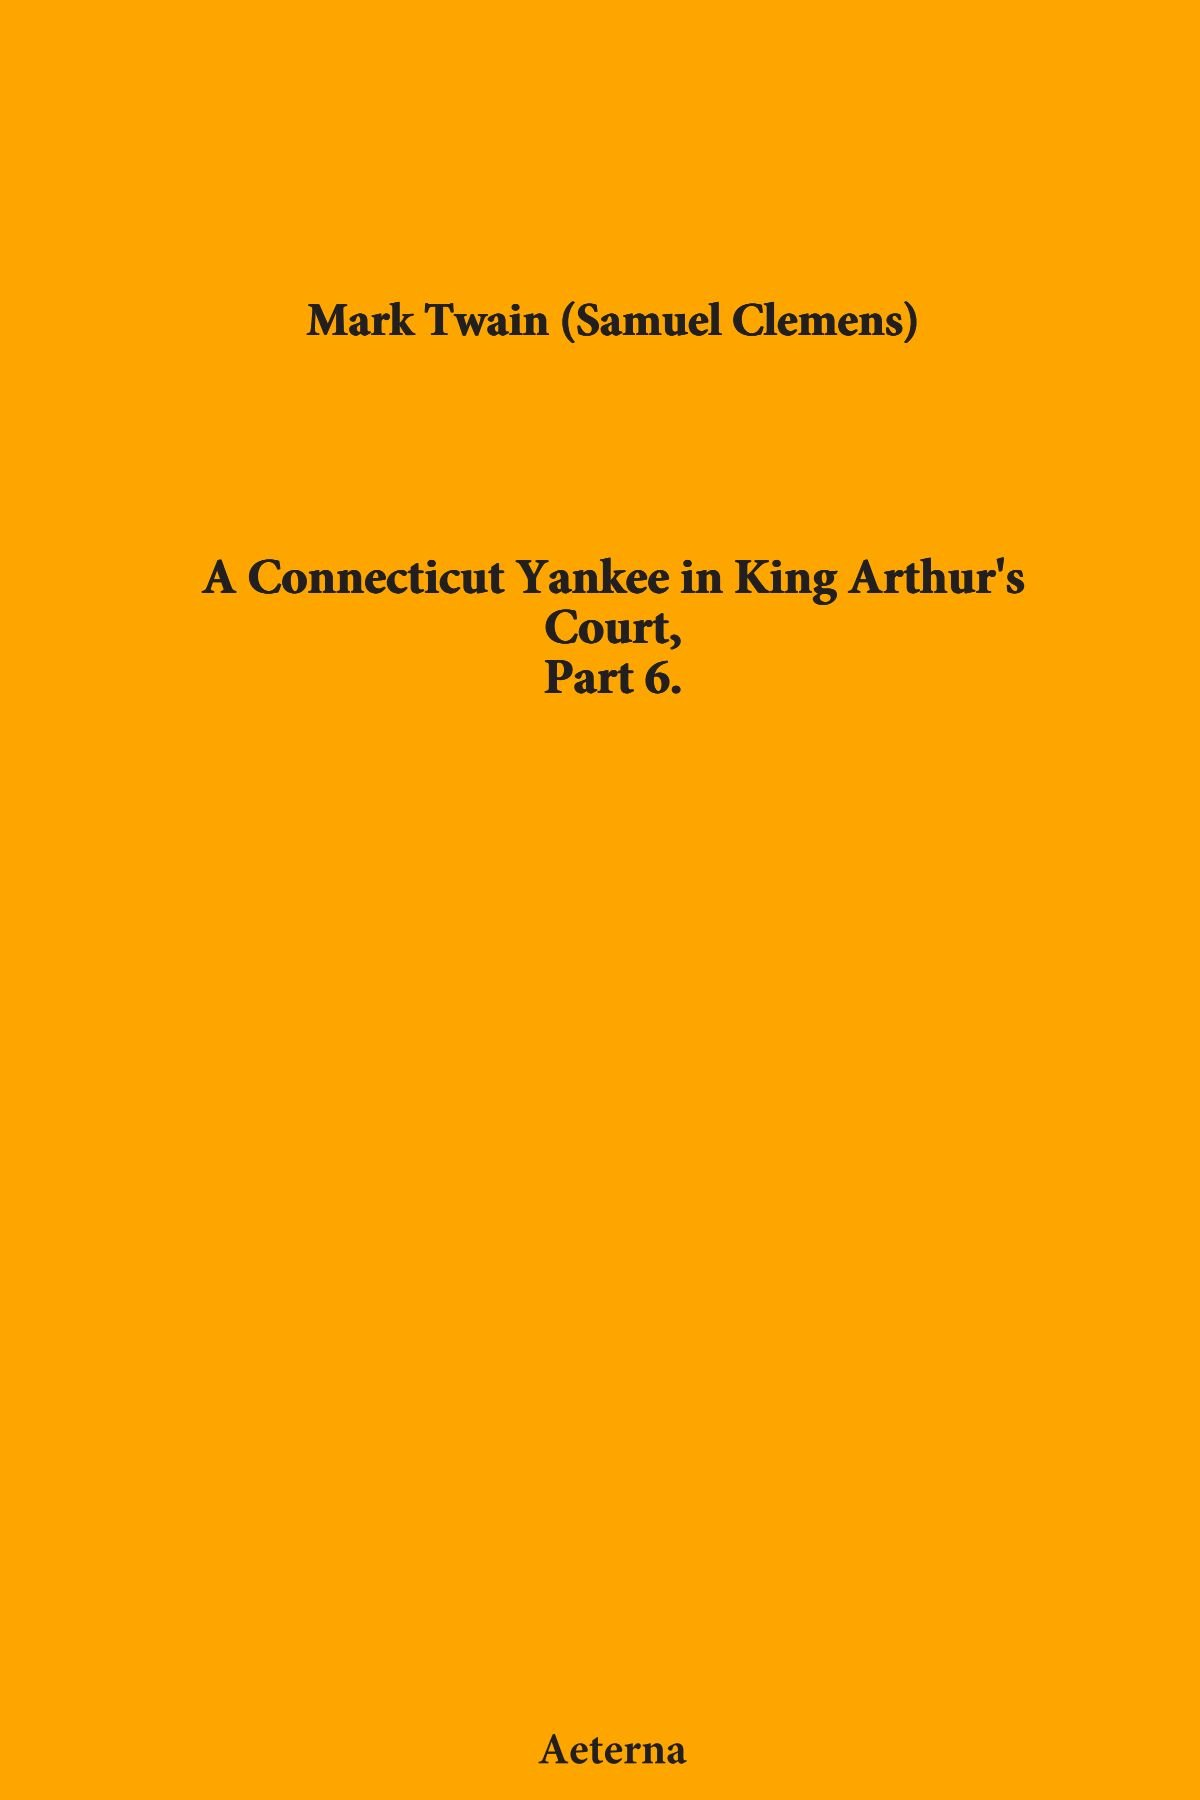 Download A Connecticut Yankee in King Arthur's Court, Part 6. ebook